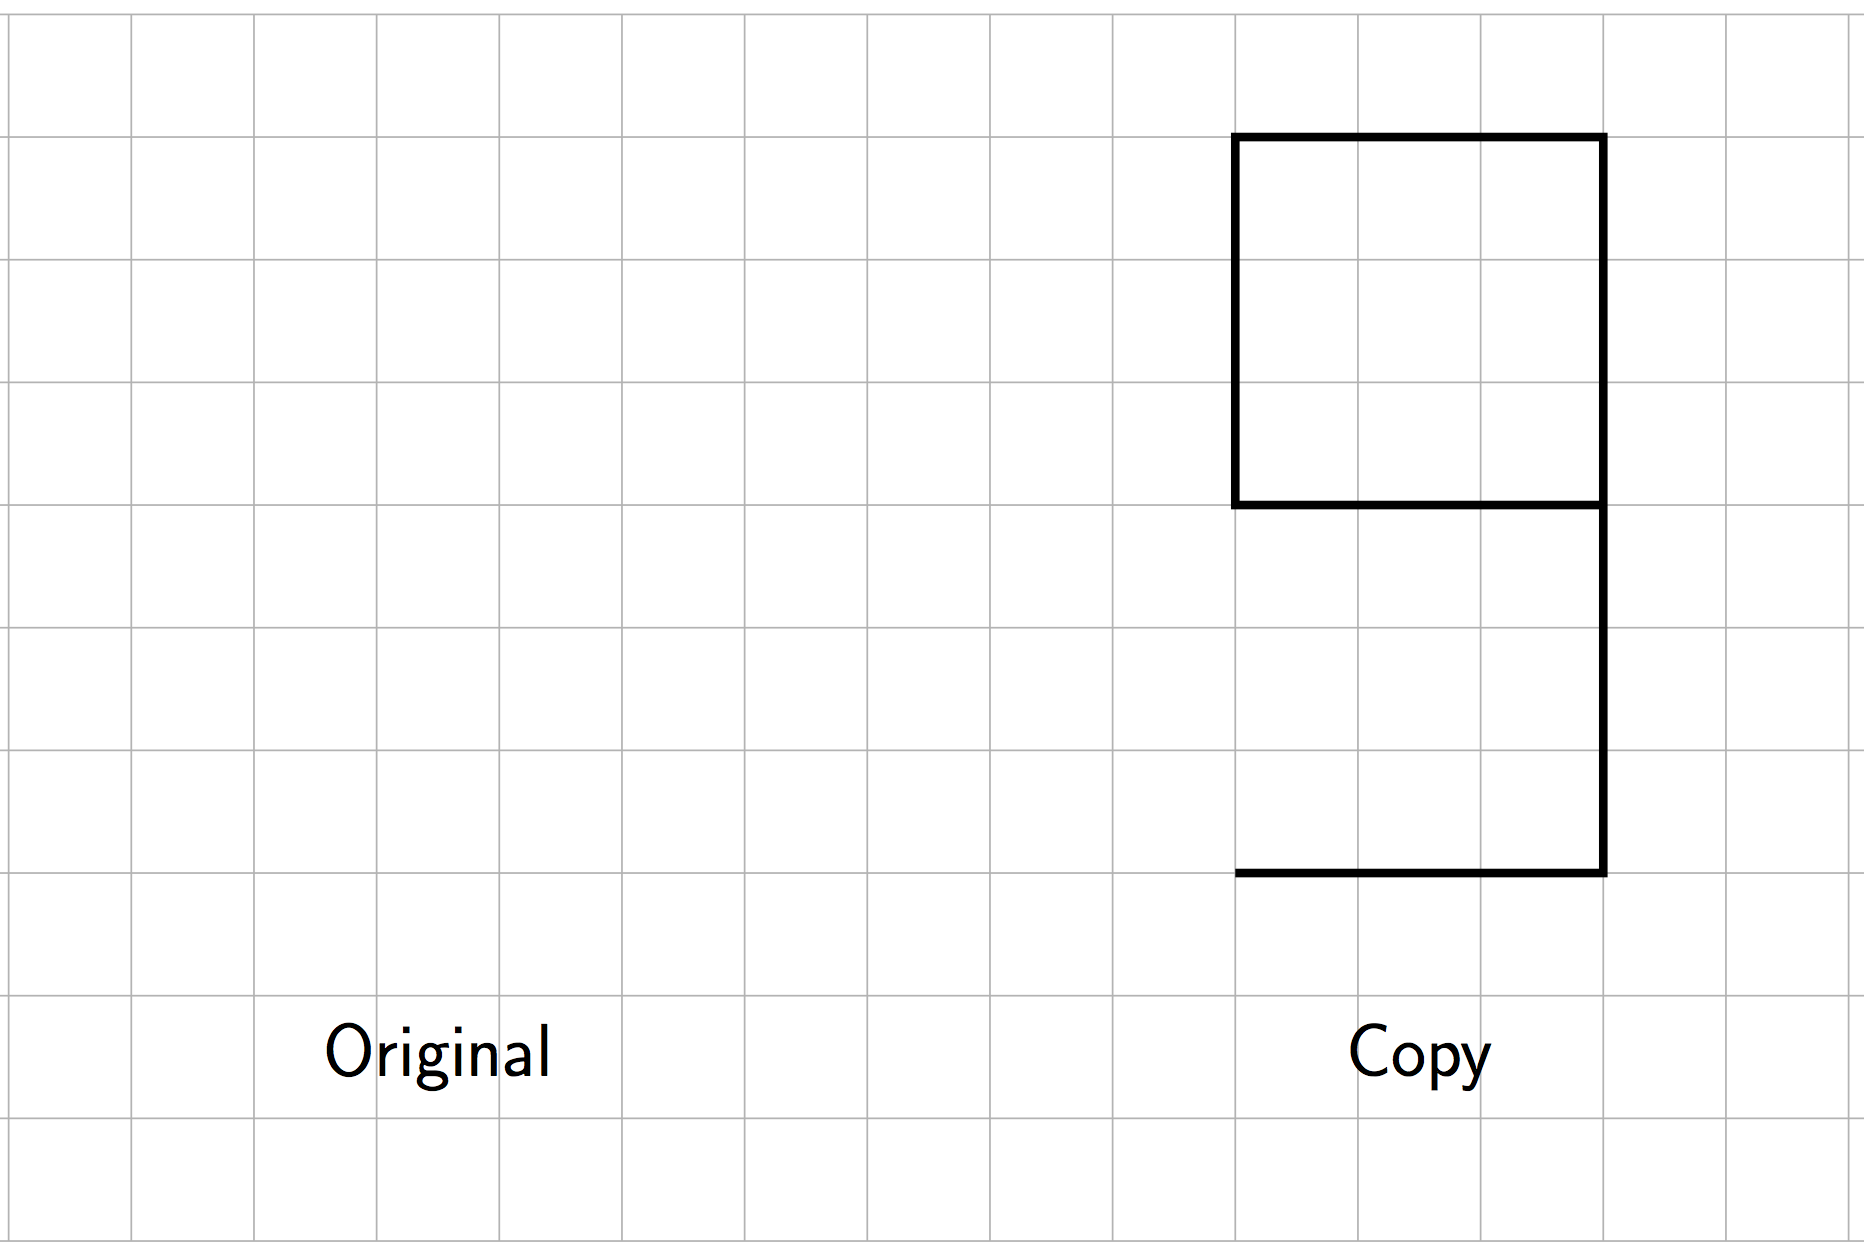 Original needs to be drawn. The copy is on a grid and shaped like a 9 with an overall height of 6. The top of the 9 is the outline of a 3 by 3 box. The bottom horizontal is 3 units.